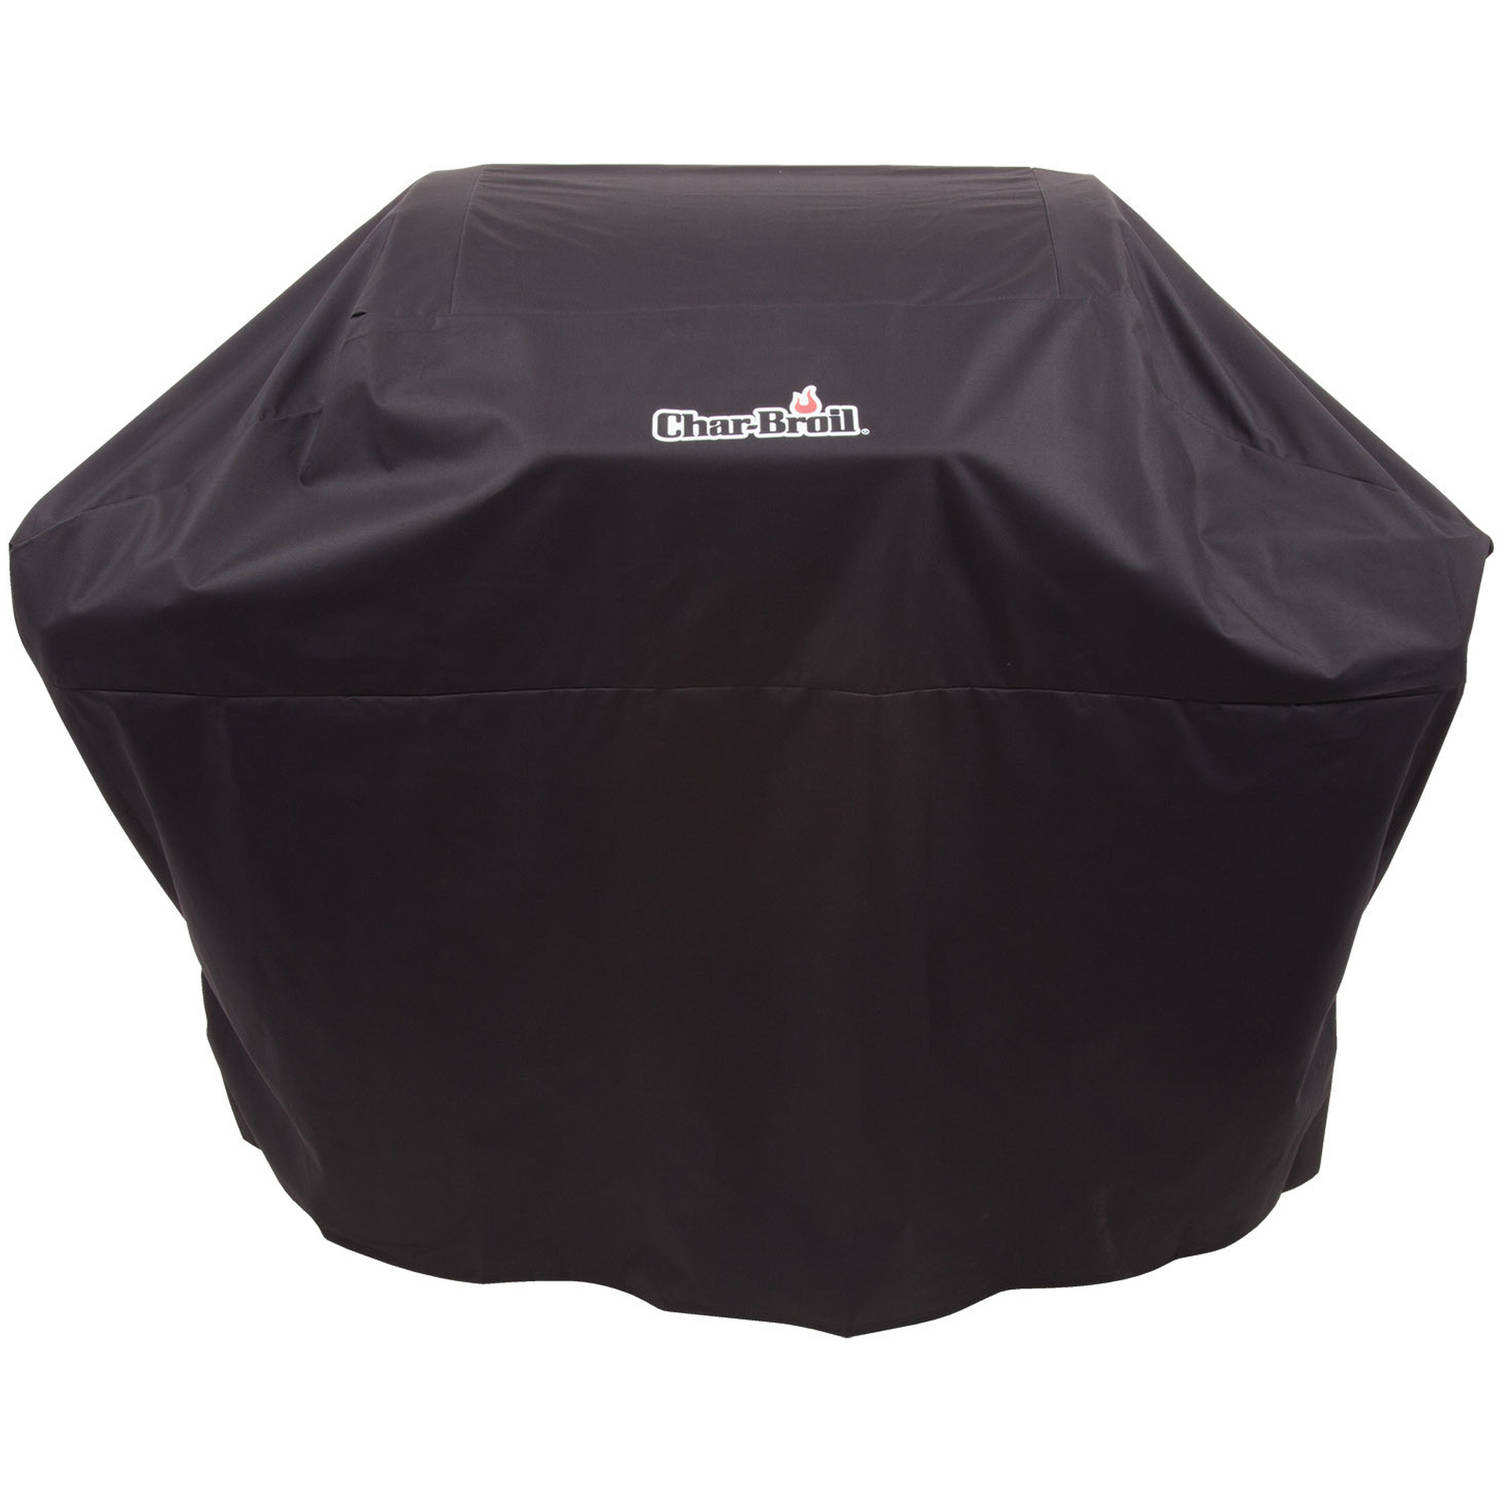 Char-Broil 3- or 4-Burner All-Season Grill Cover